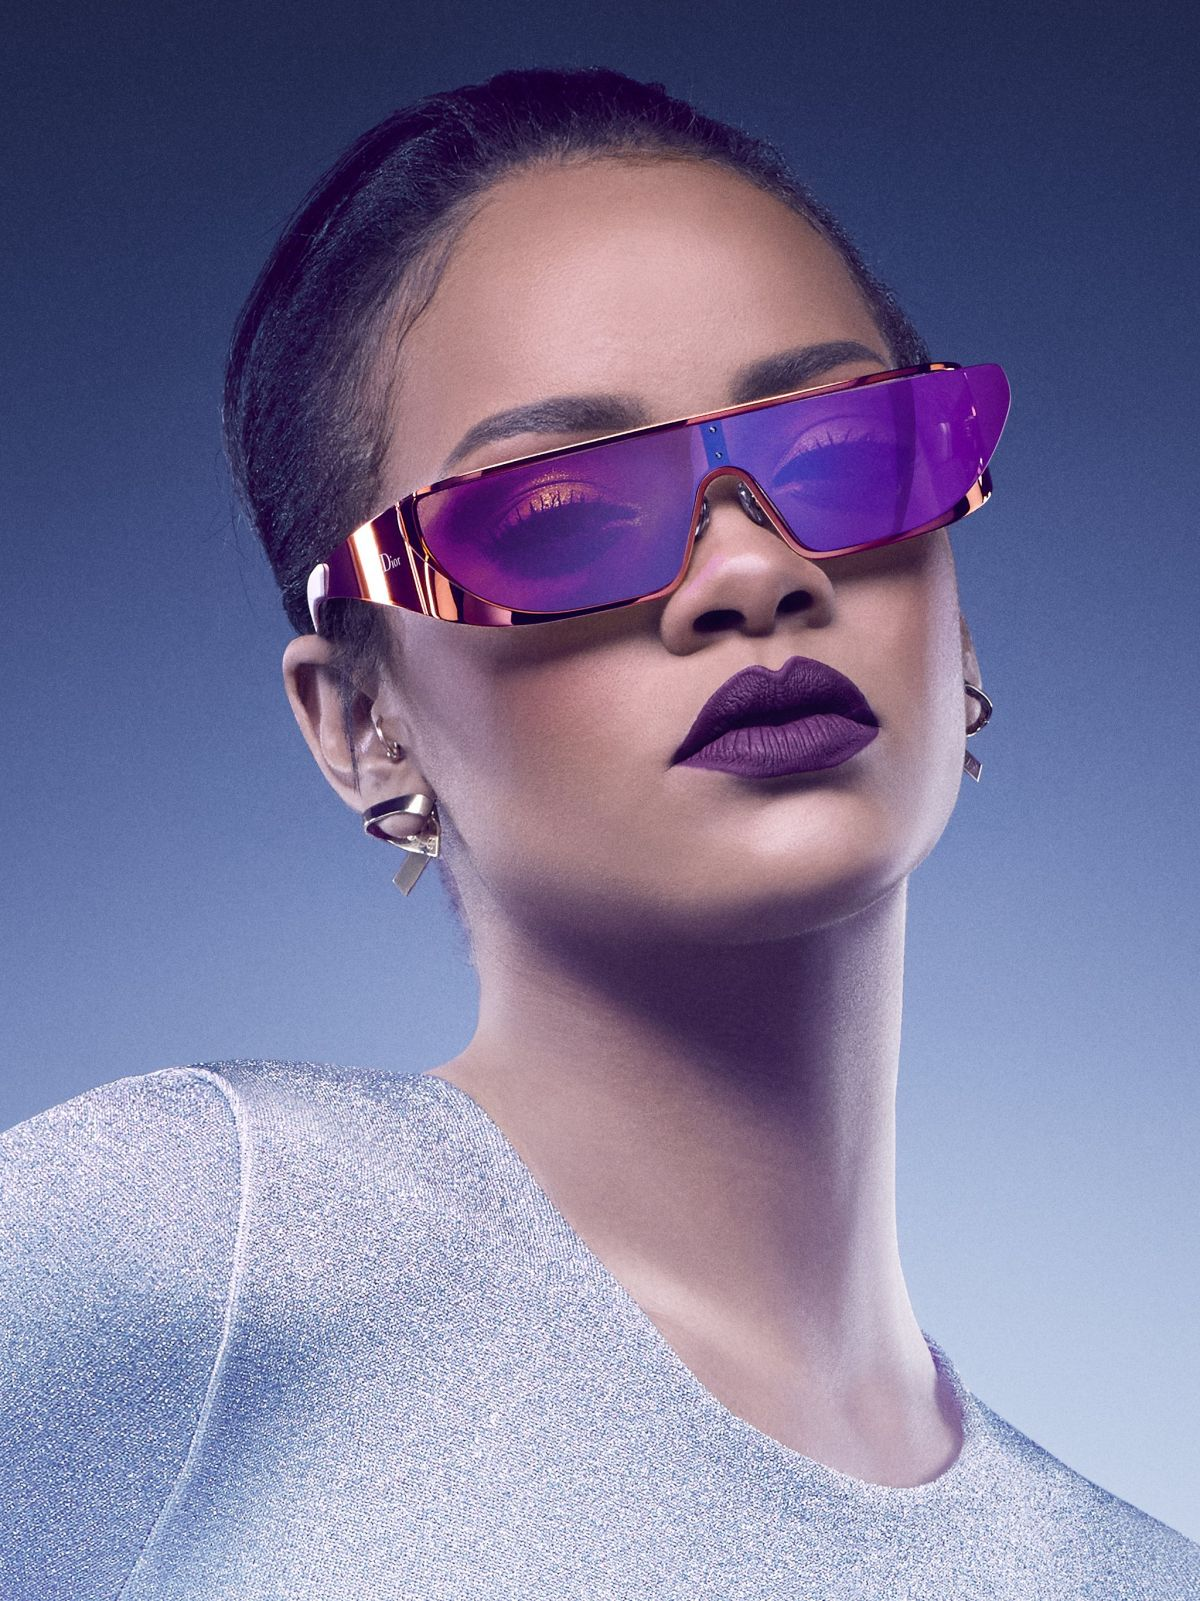 RIHANNA for Christian Dior & Rihanna Eyewear 2016